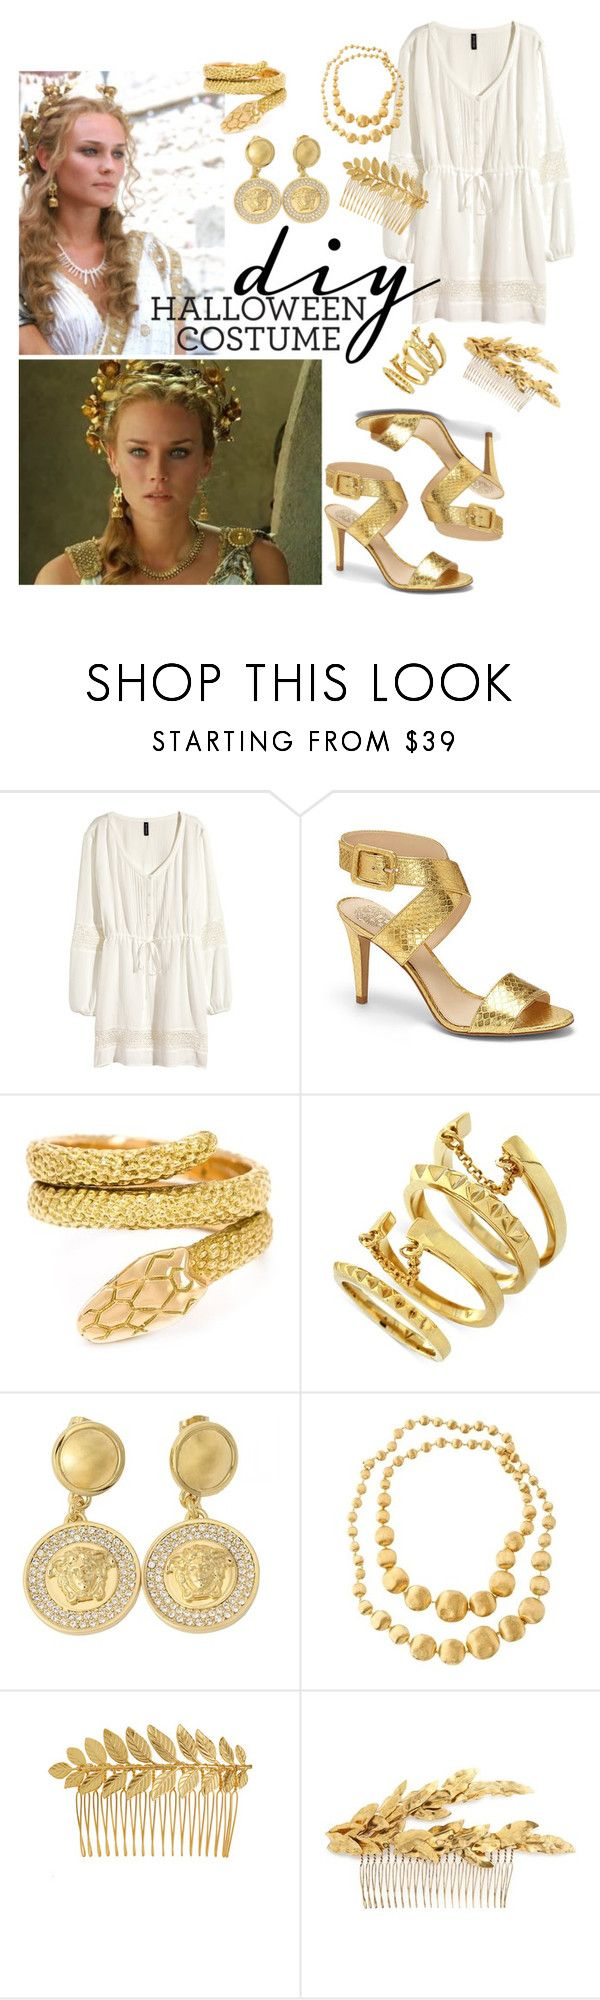 """Costume: Helen of Troy"" by tharwawajihahzainal ❤ liked on Polyvore featuring H&M, Helen of Troy, Vince Camuto, Cartier, Versace, Marco Bicego, Ellen Hunter, J.Crew, DIY and movies"